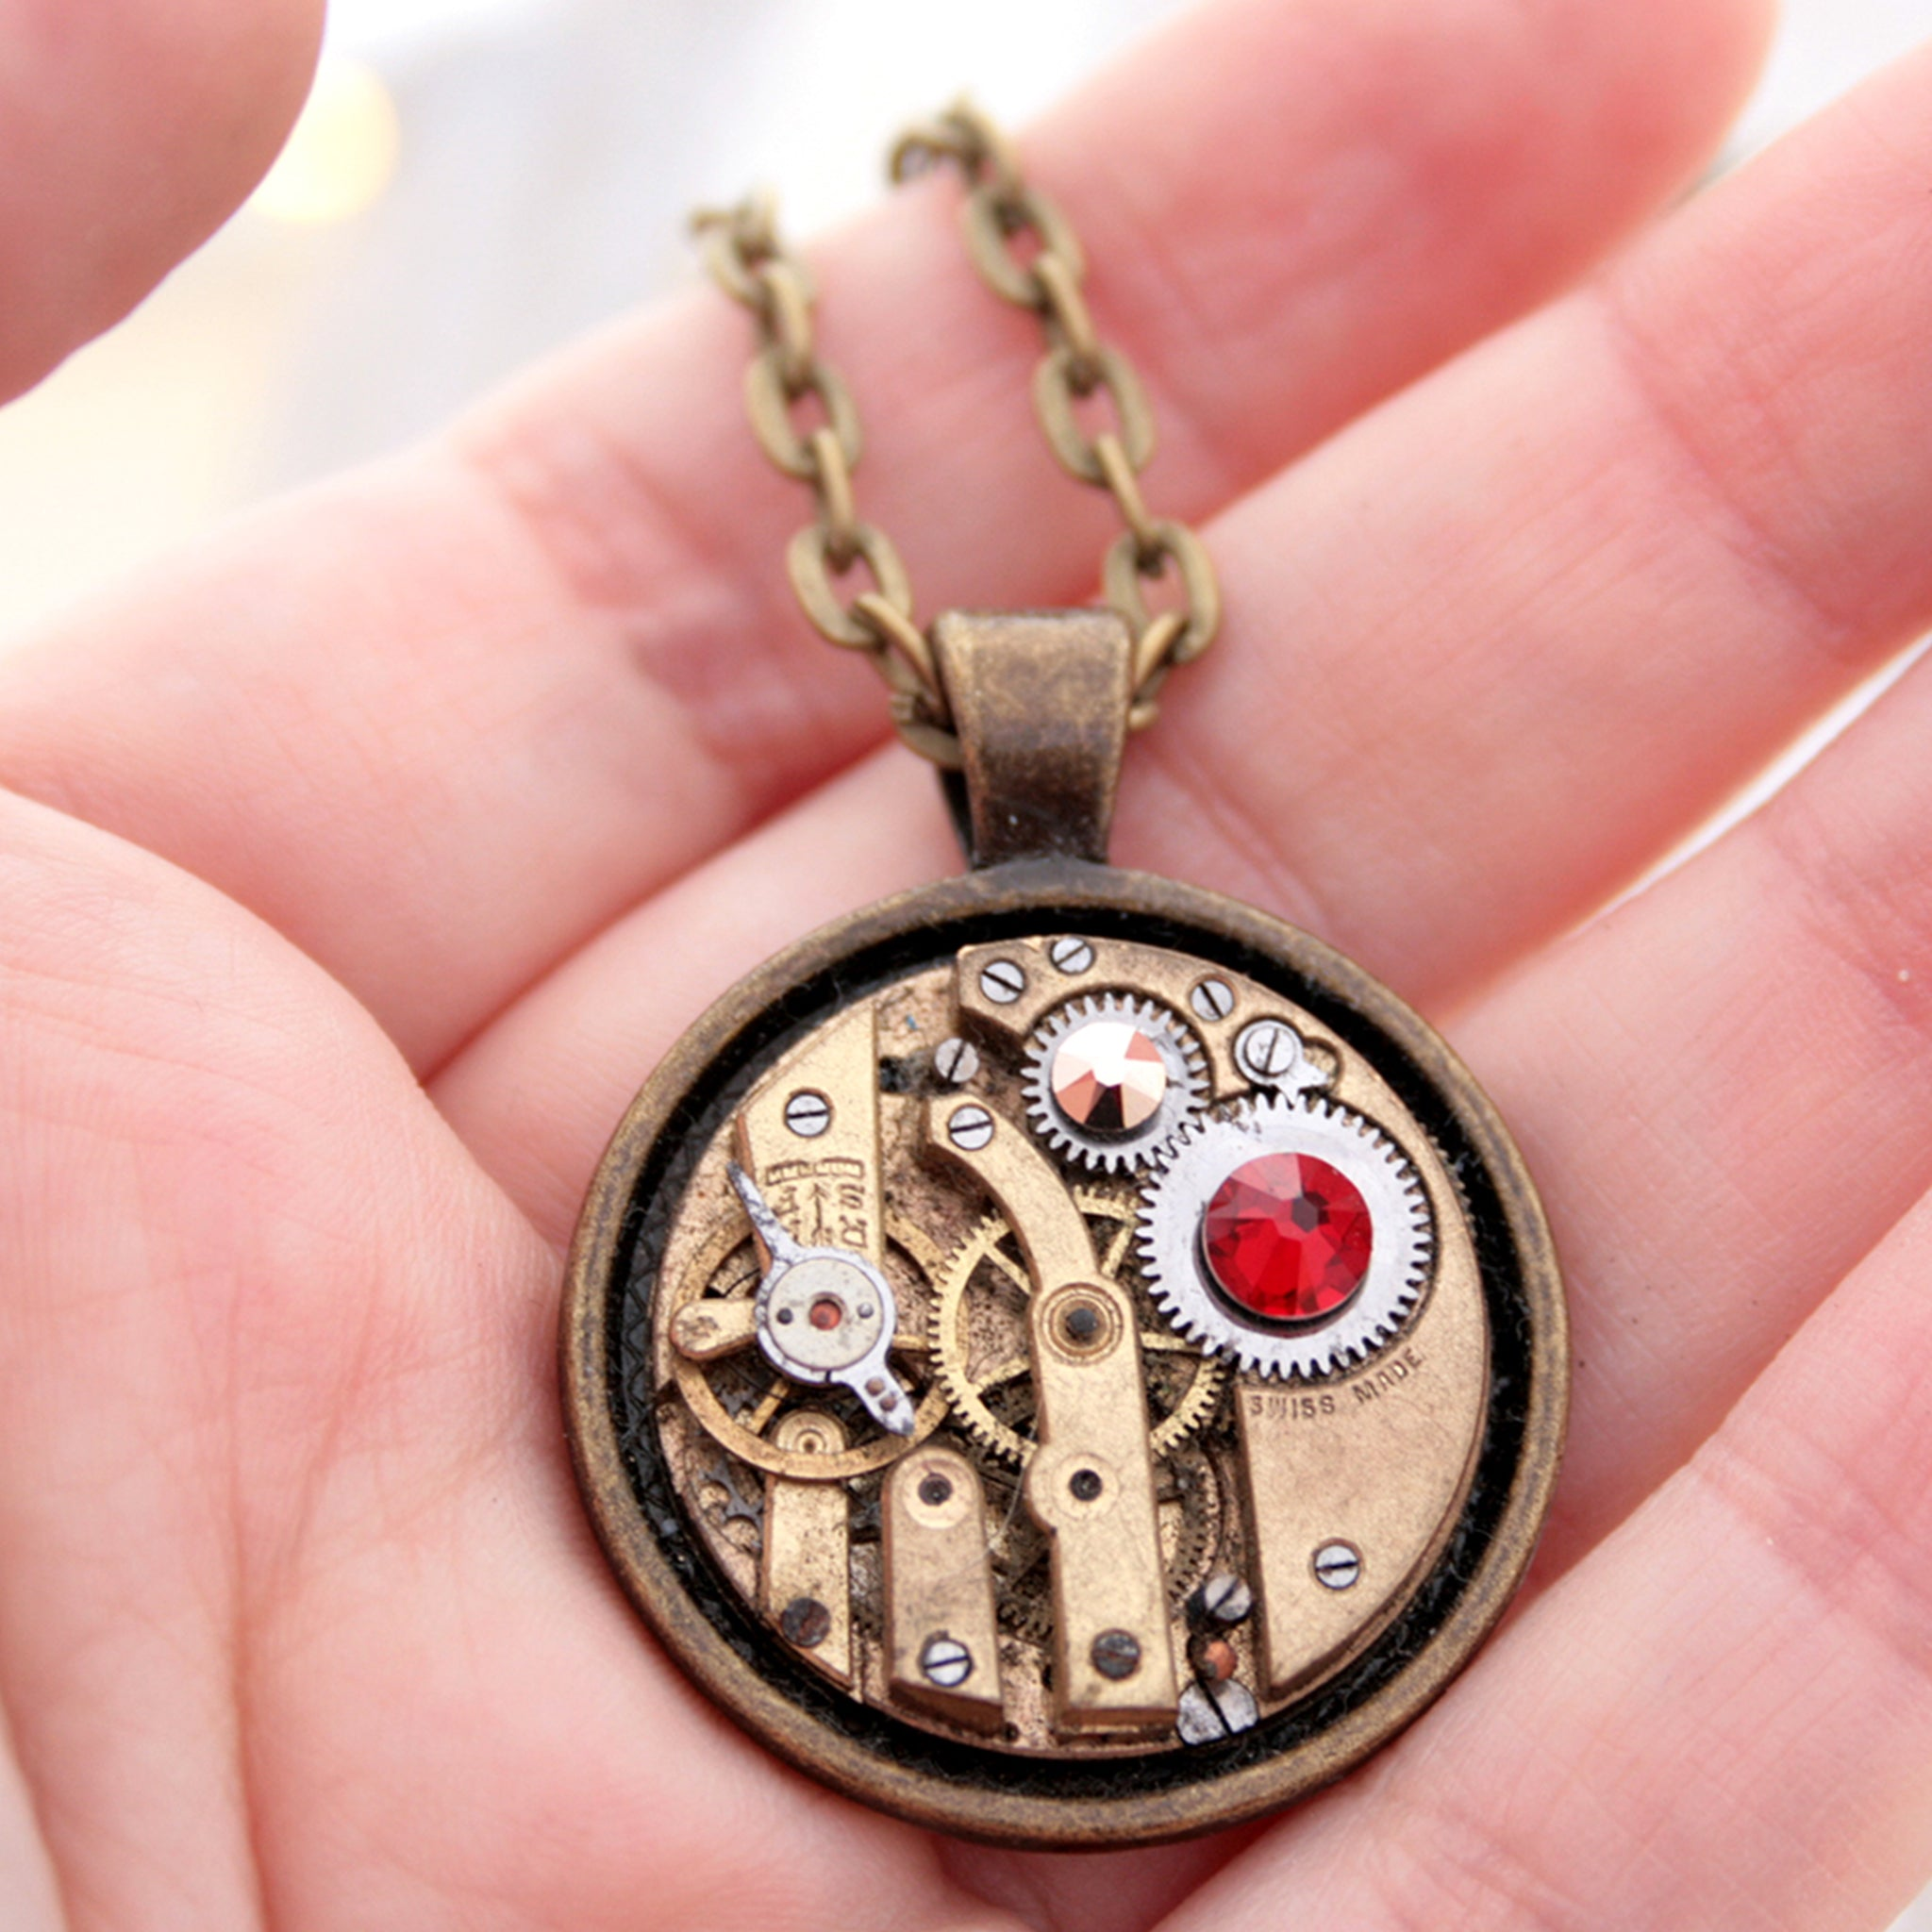 Steampunk Necklace with Scarlet Crystal